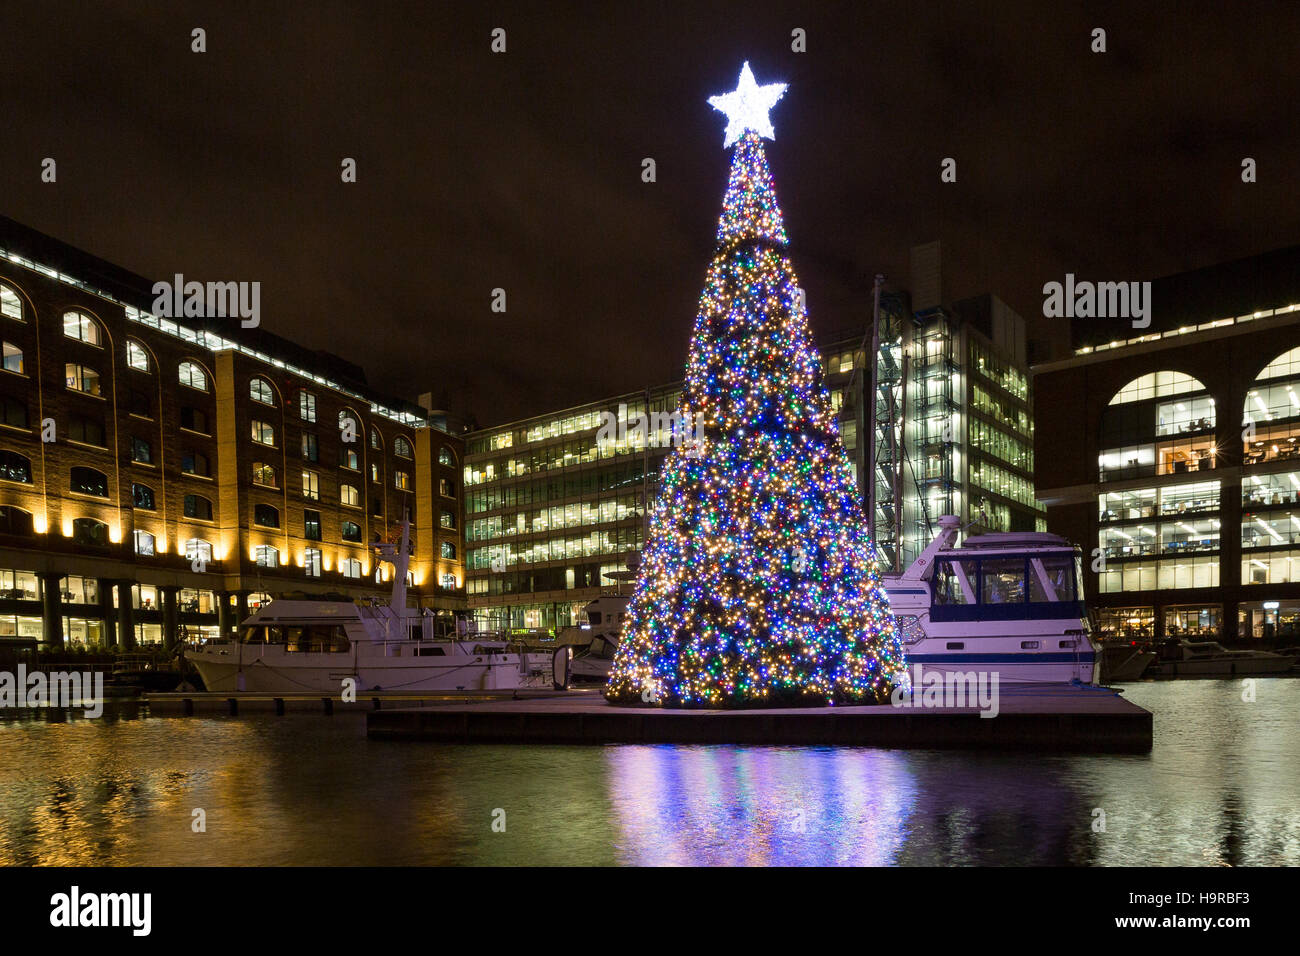 Lights From The Floating Christmas Tree Reflect In